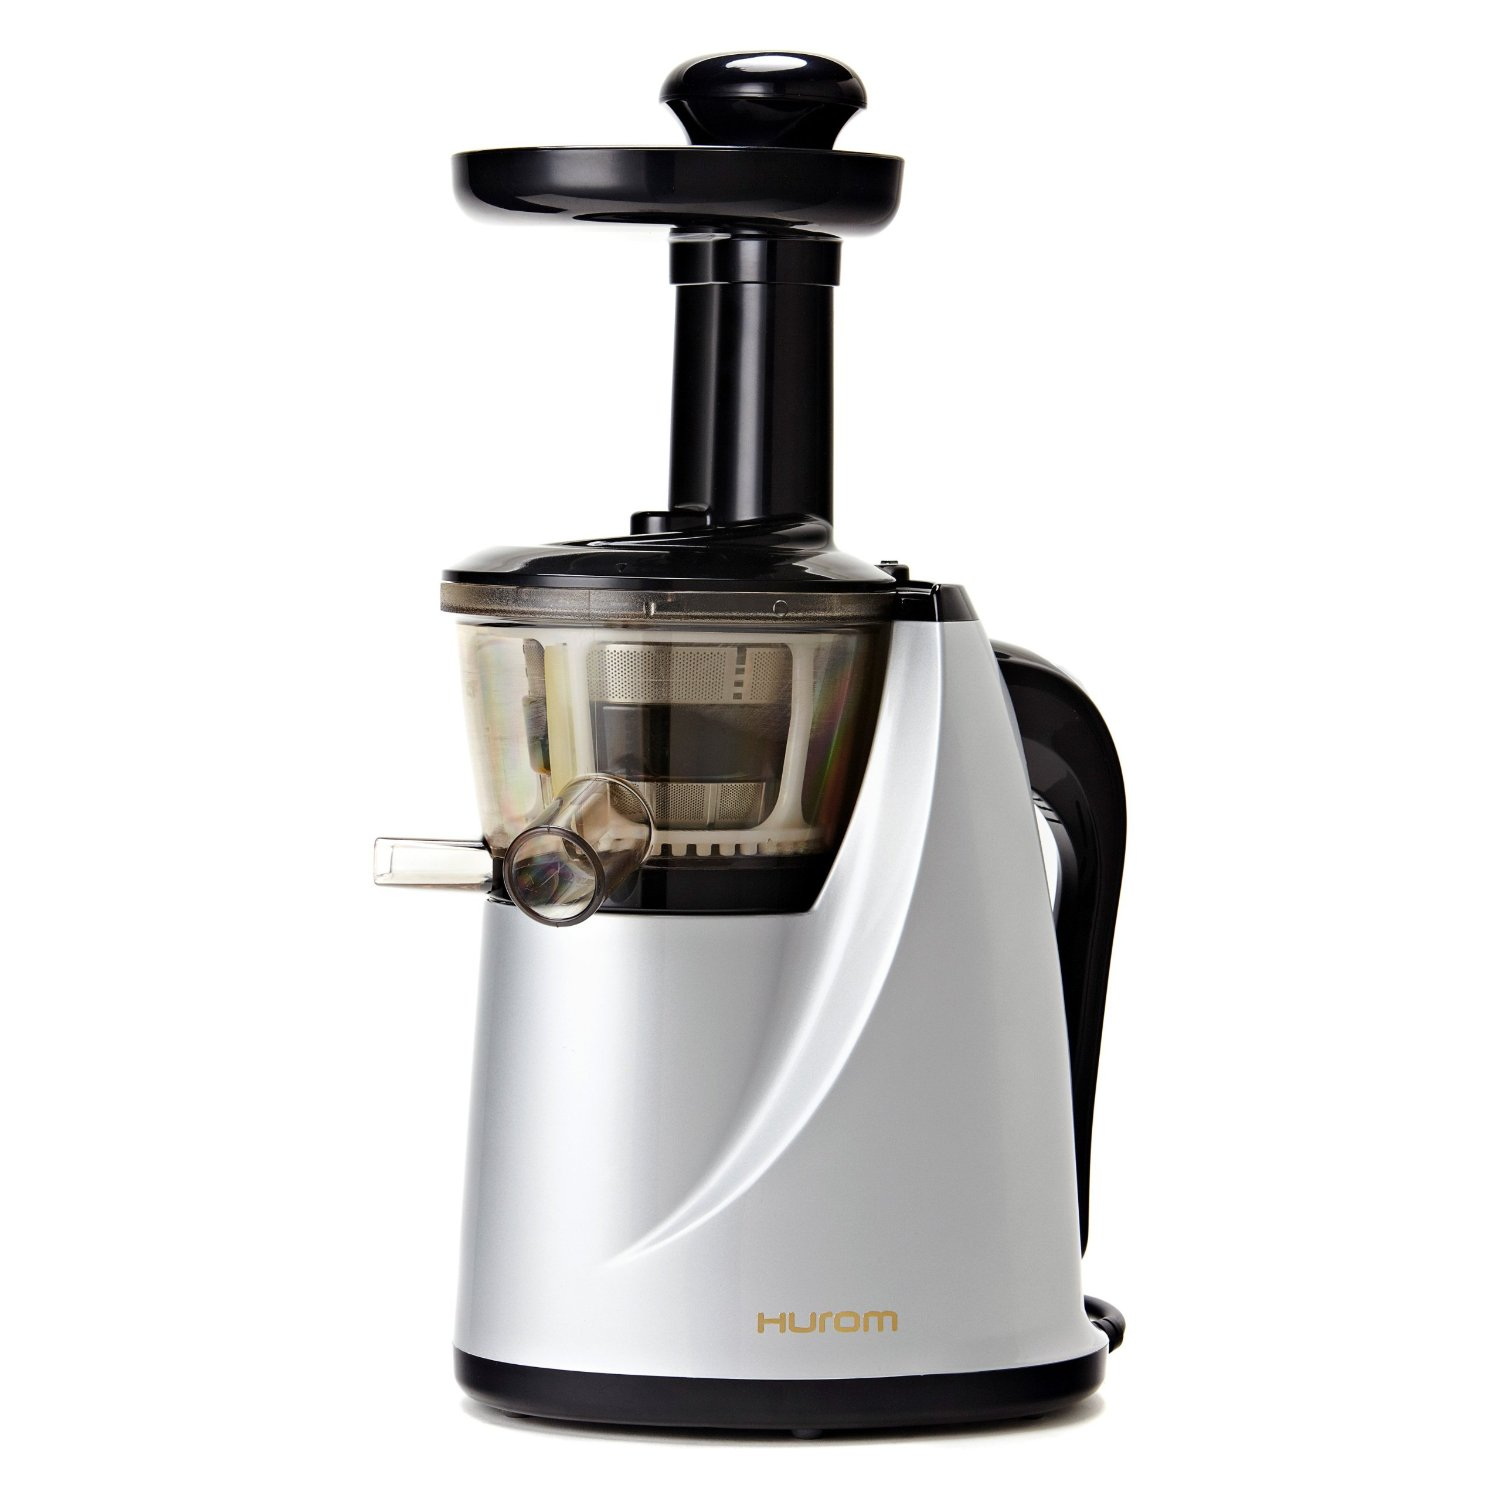 Naturai Slow Juicer Review : Hurom HU-100 Masticating Slow Juicer Review - Best Cold Press Juicers